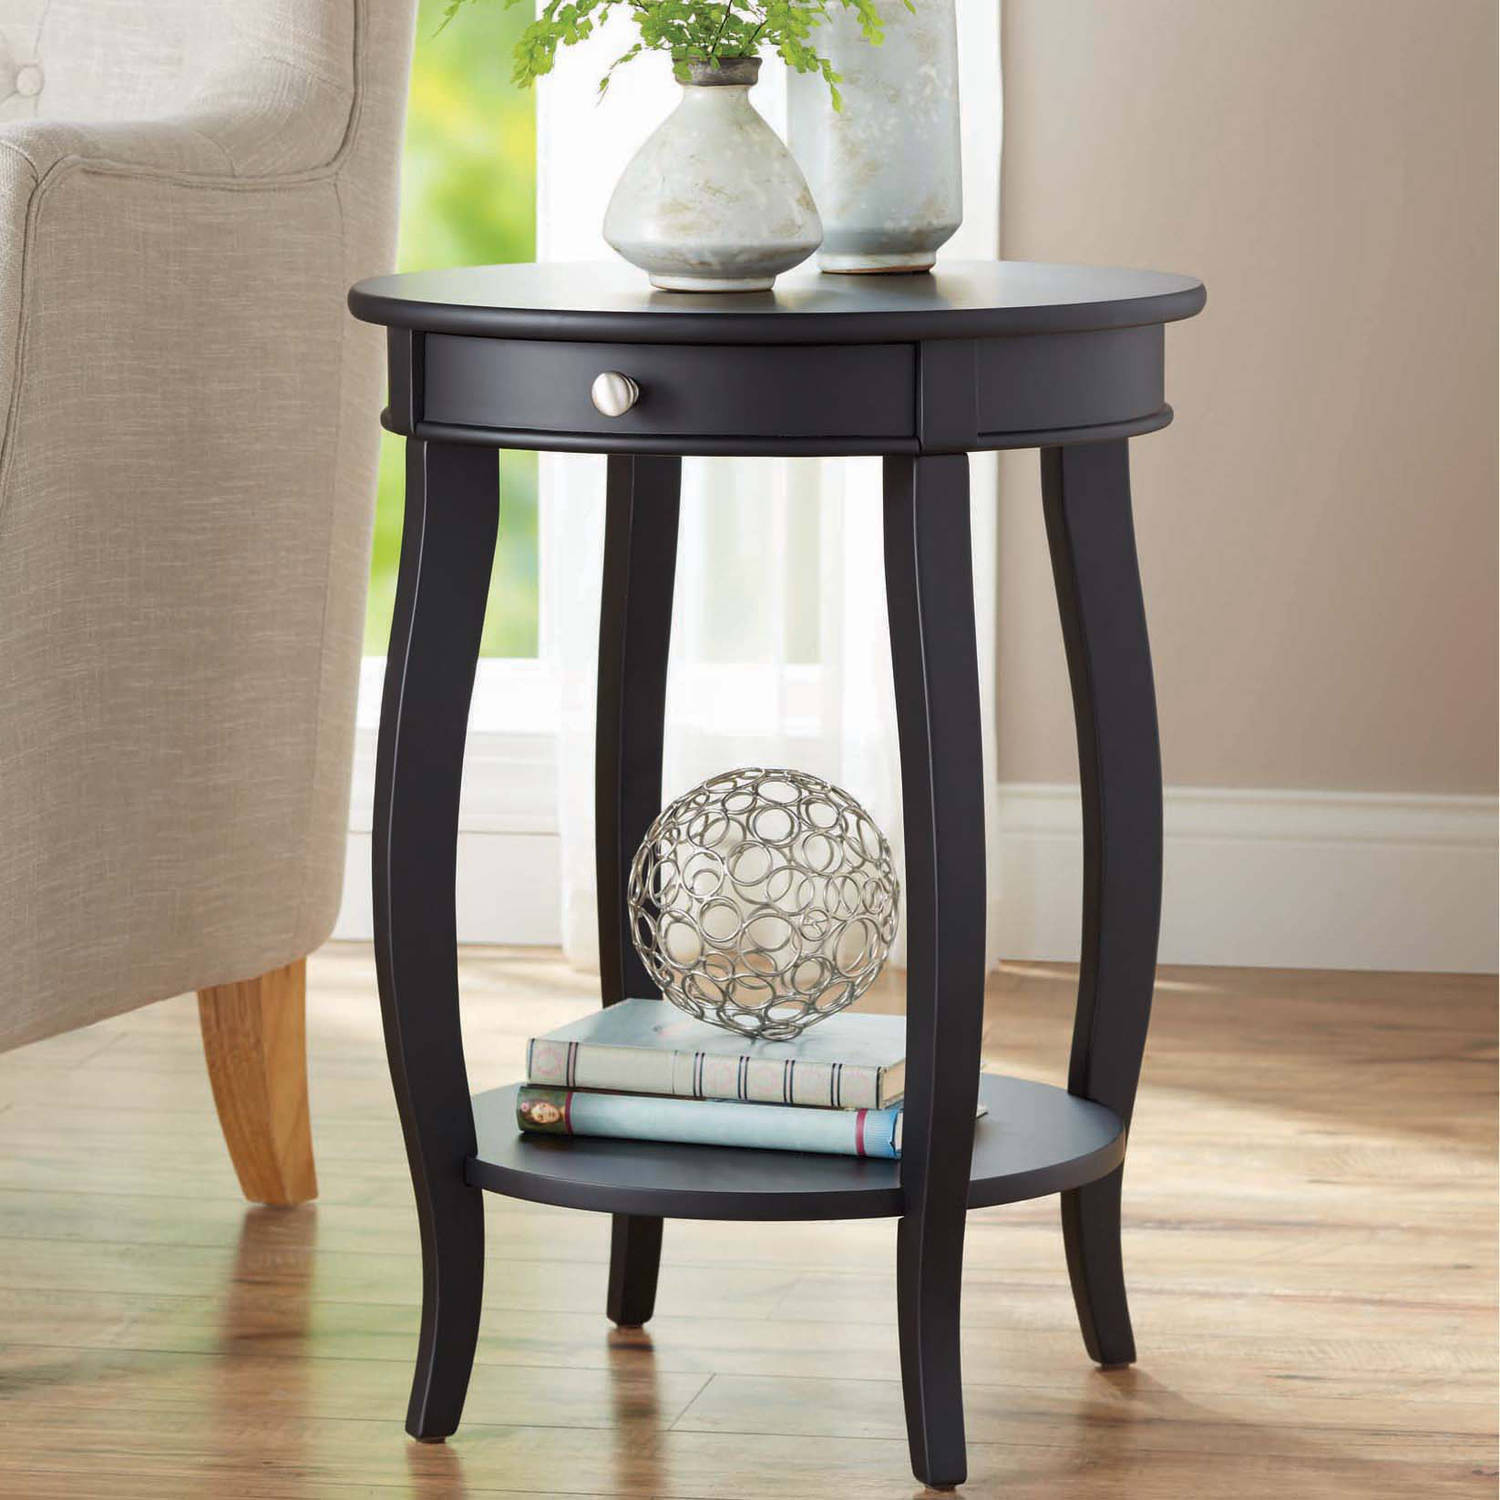 better homes gardens round accent table with drawer multiple mainstays colors large cover nice end tables honey pine unusual side floating nightstand small bedside lamps african